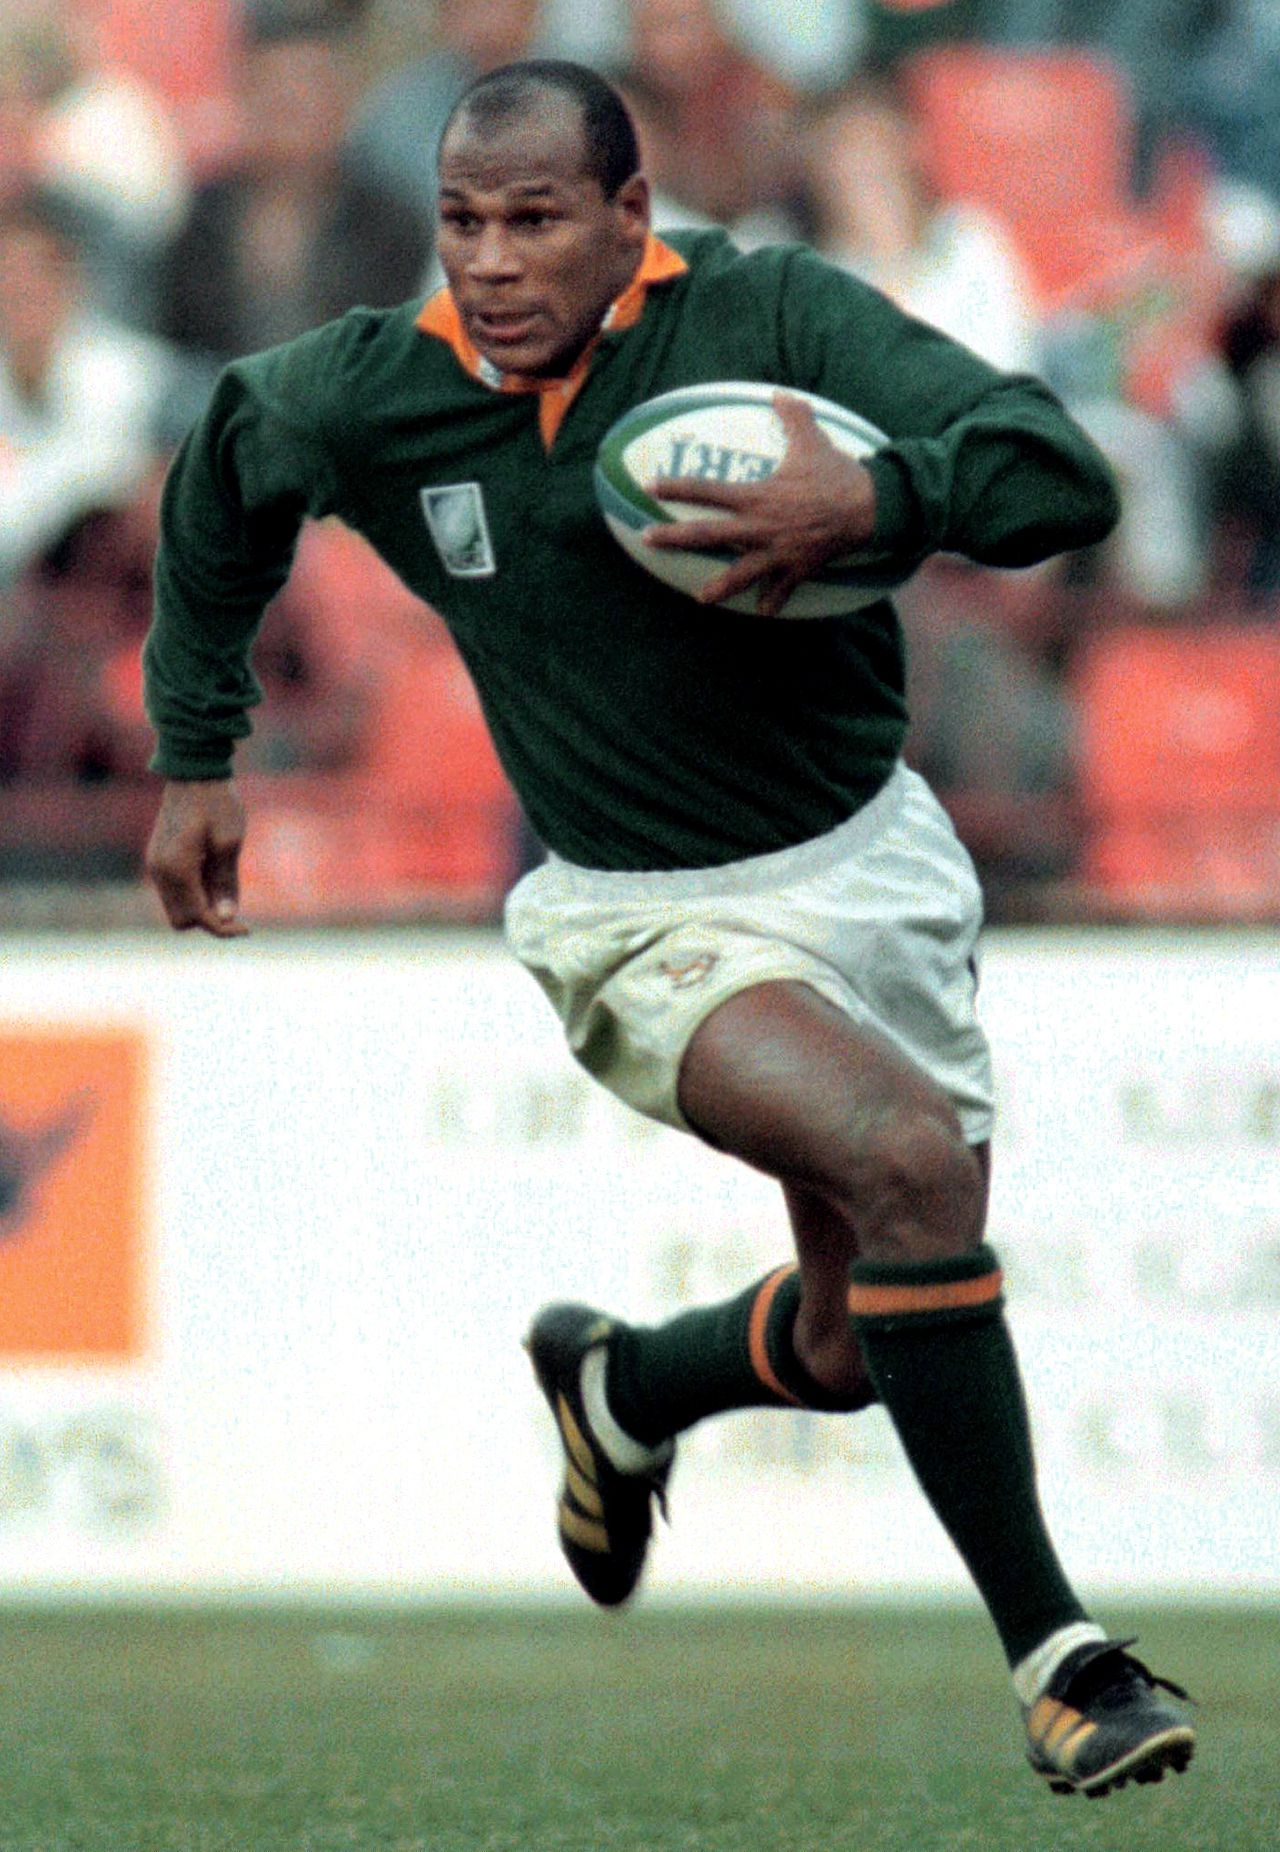 South African winger Chester Williams runs downfield during the Rugby World Cup quarter final match against Western-Samoa at Ellis Park June 10. Williams scored four tries and 20 points for his team. South Africa won 42-14 and qualified for the semi-finals